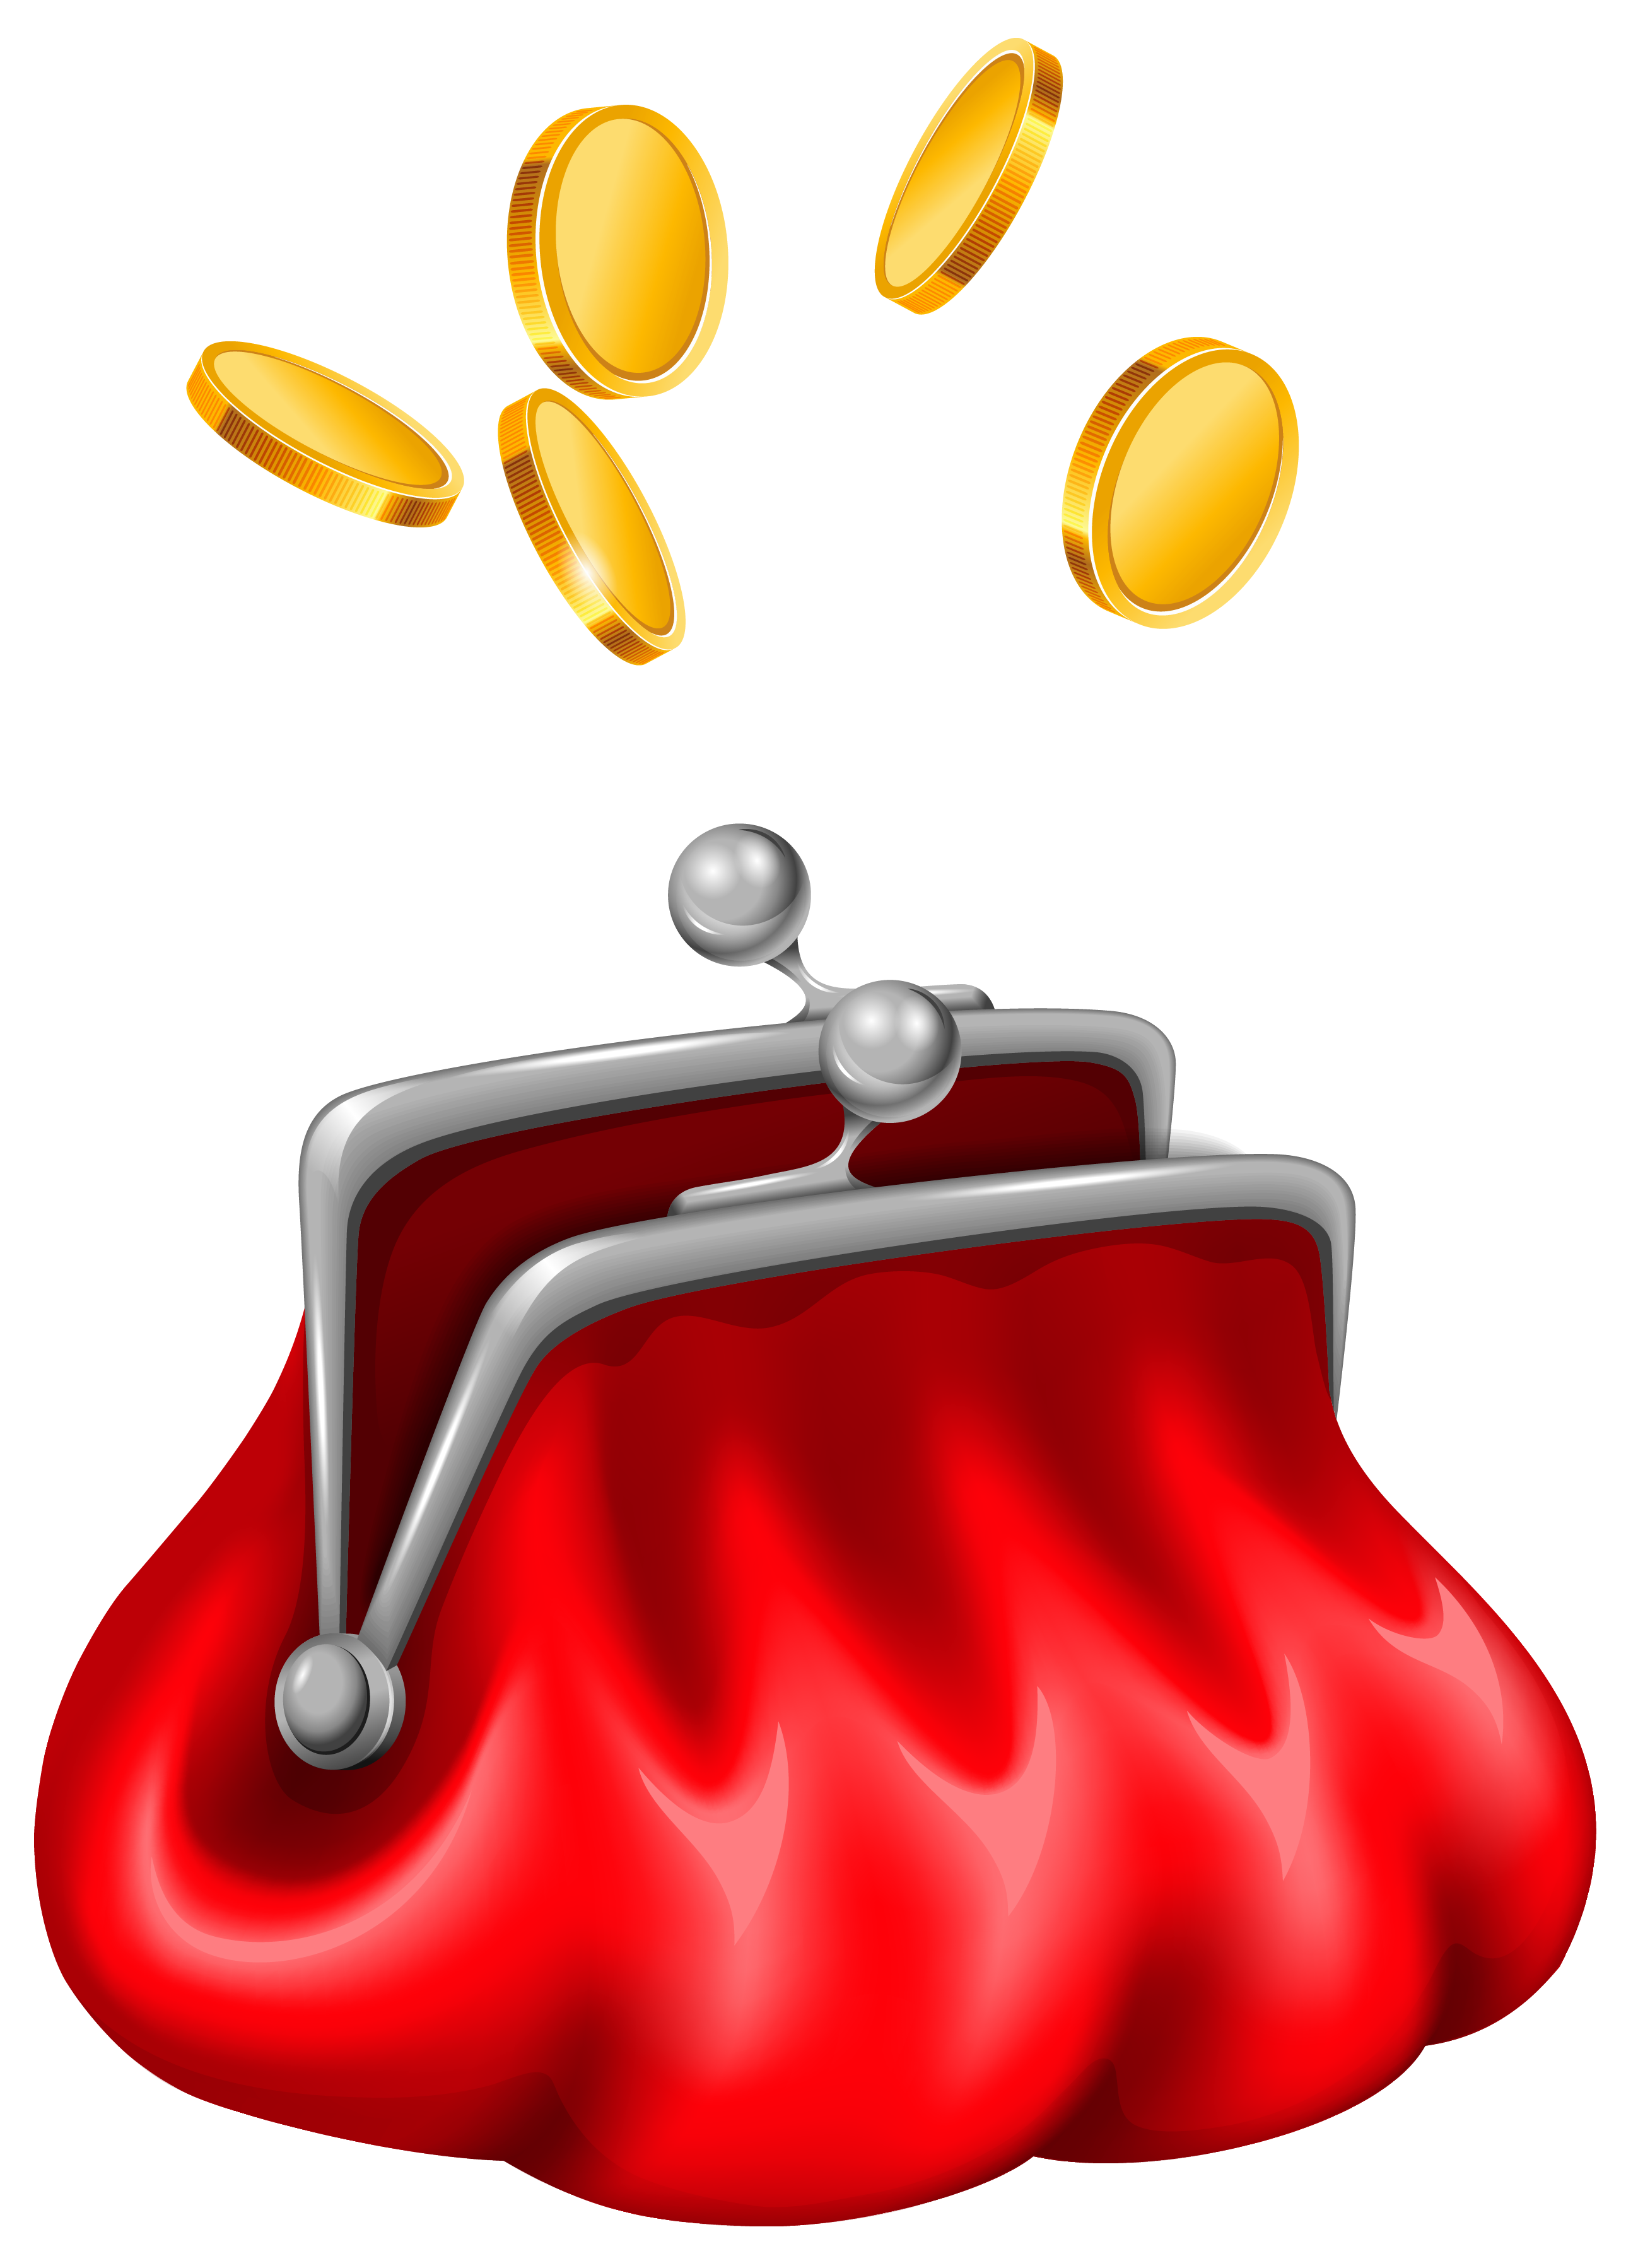 Luggage clipart animated. Purse with coins gallery